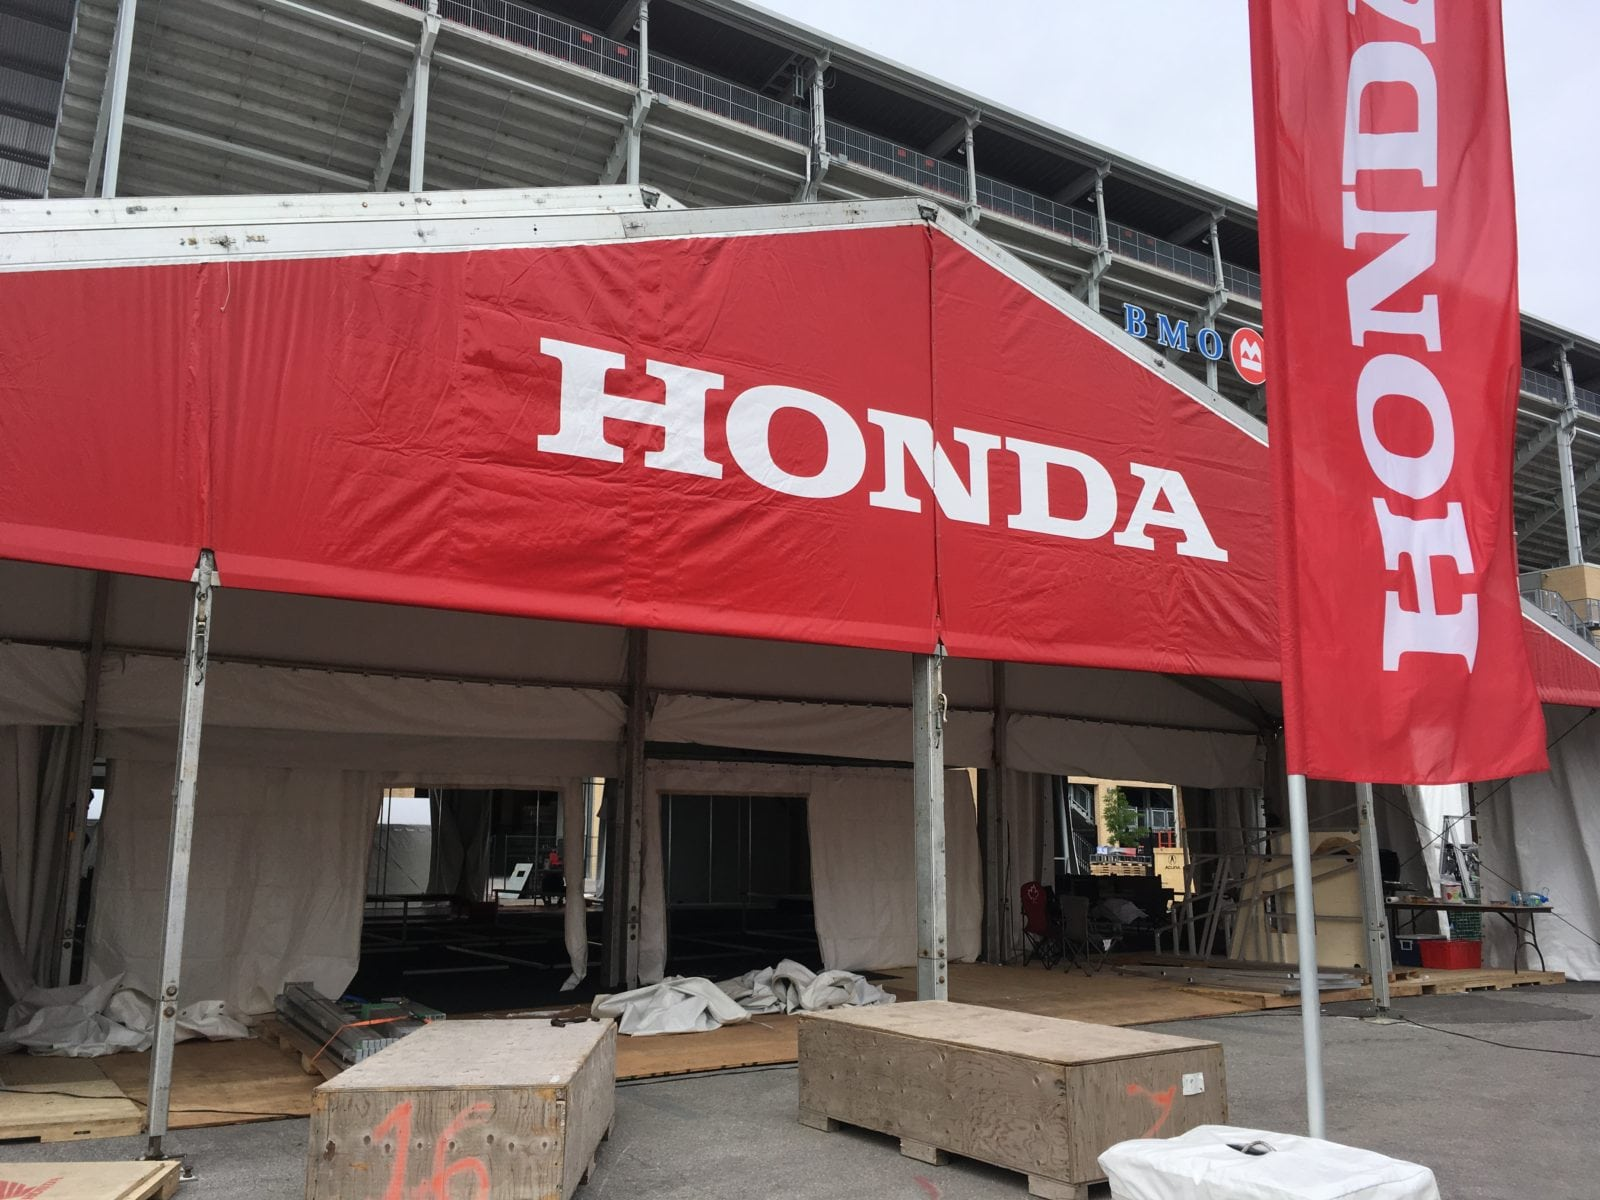 The summer is a very busy time for Regal Tent Productions and this week weu0027re working on one of our biggest jobs in July u2013 the Honda Indy! & This Week at Regal - The Honda Indy! - Regal Tent Productions